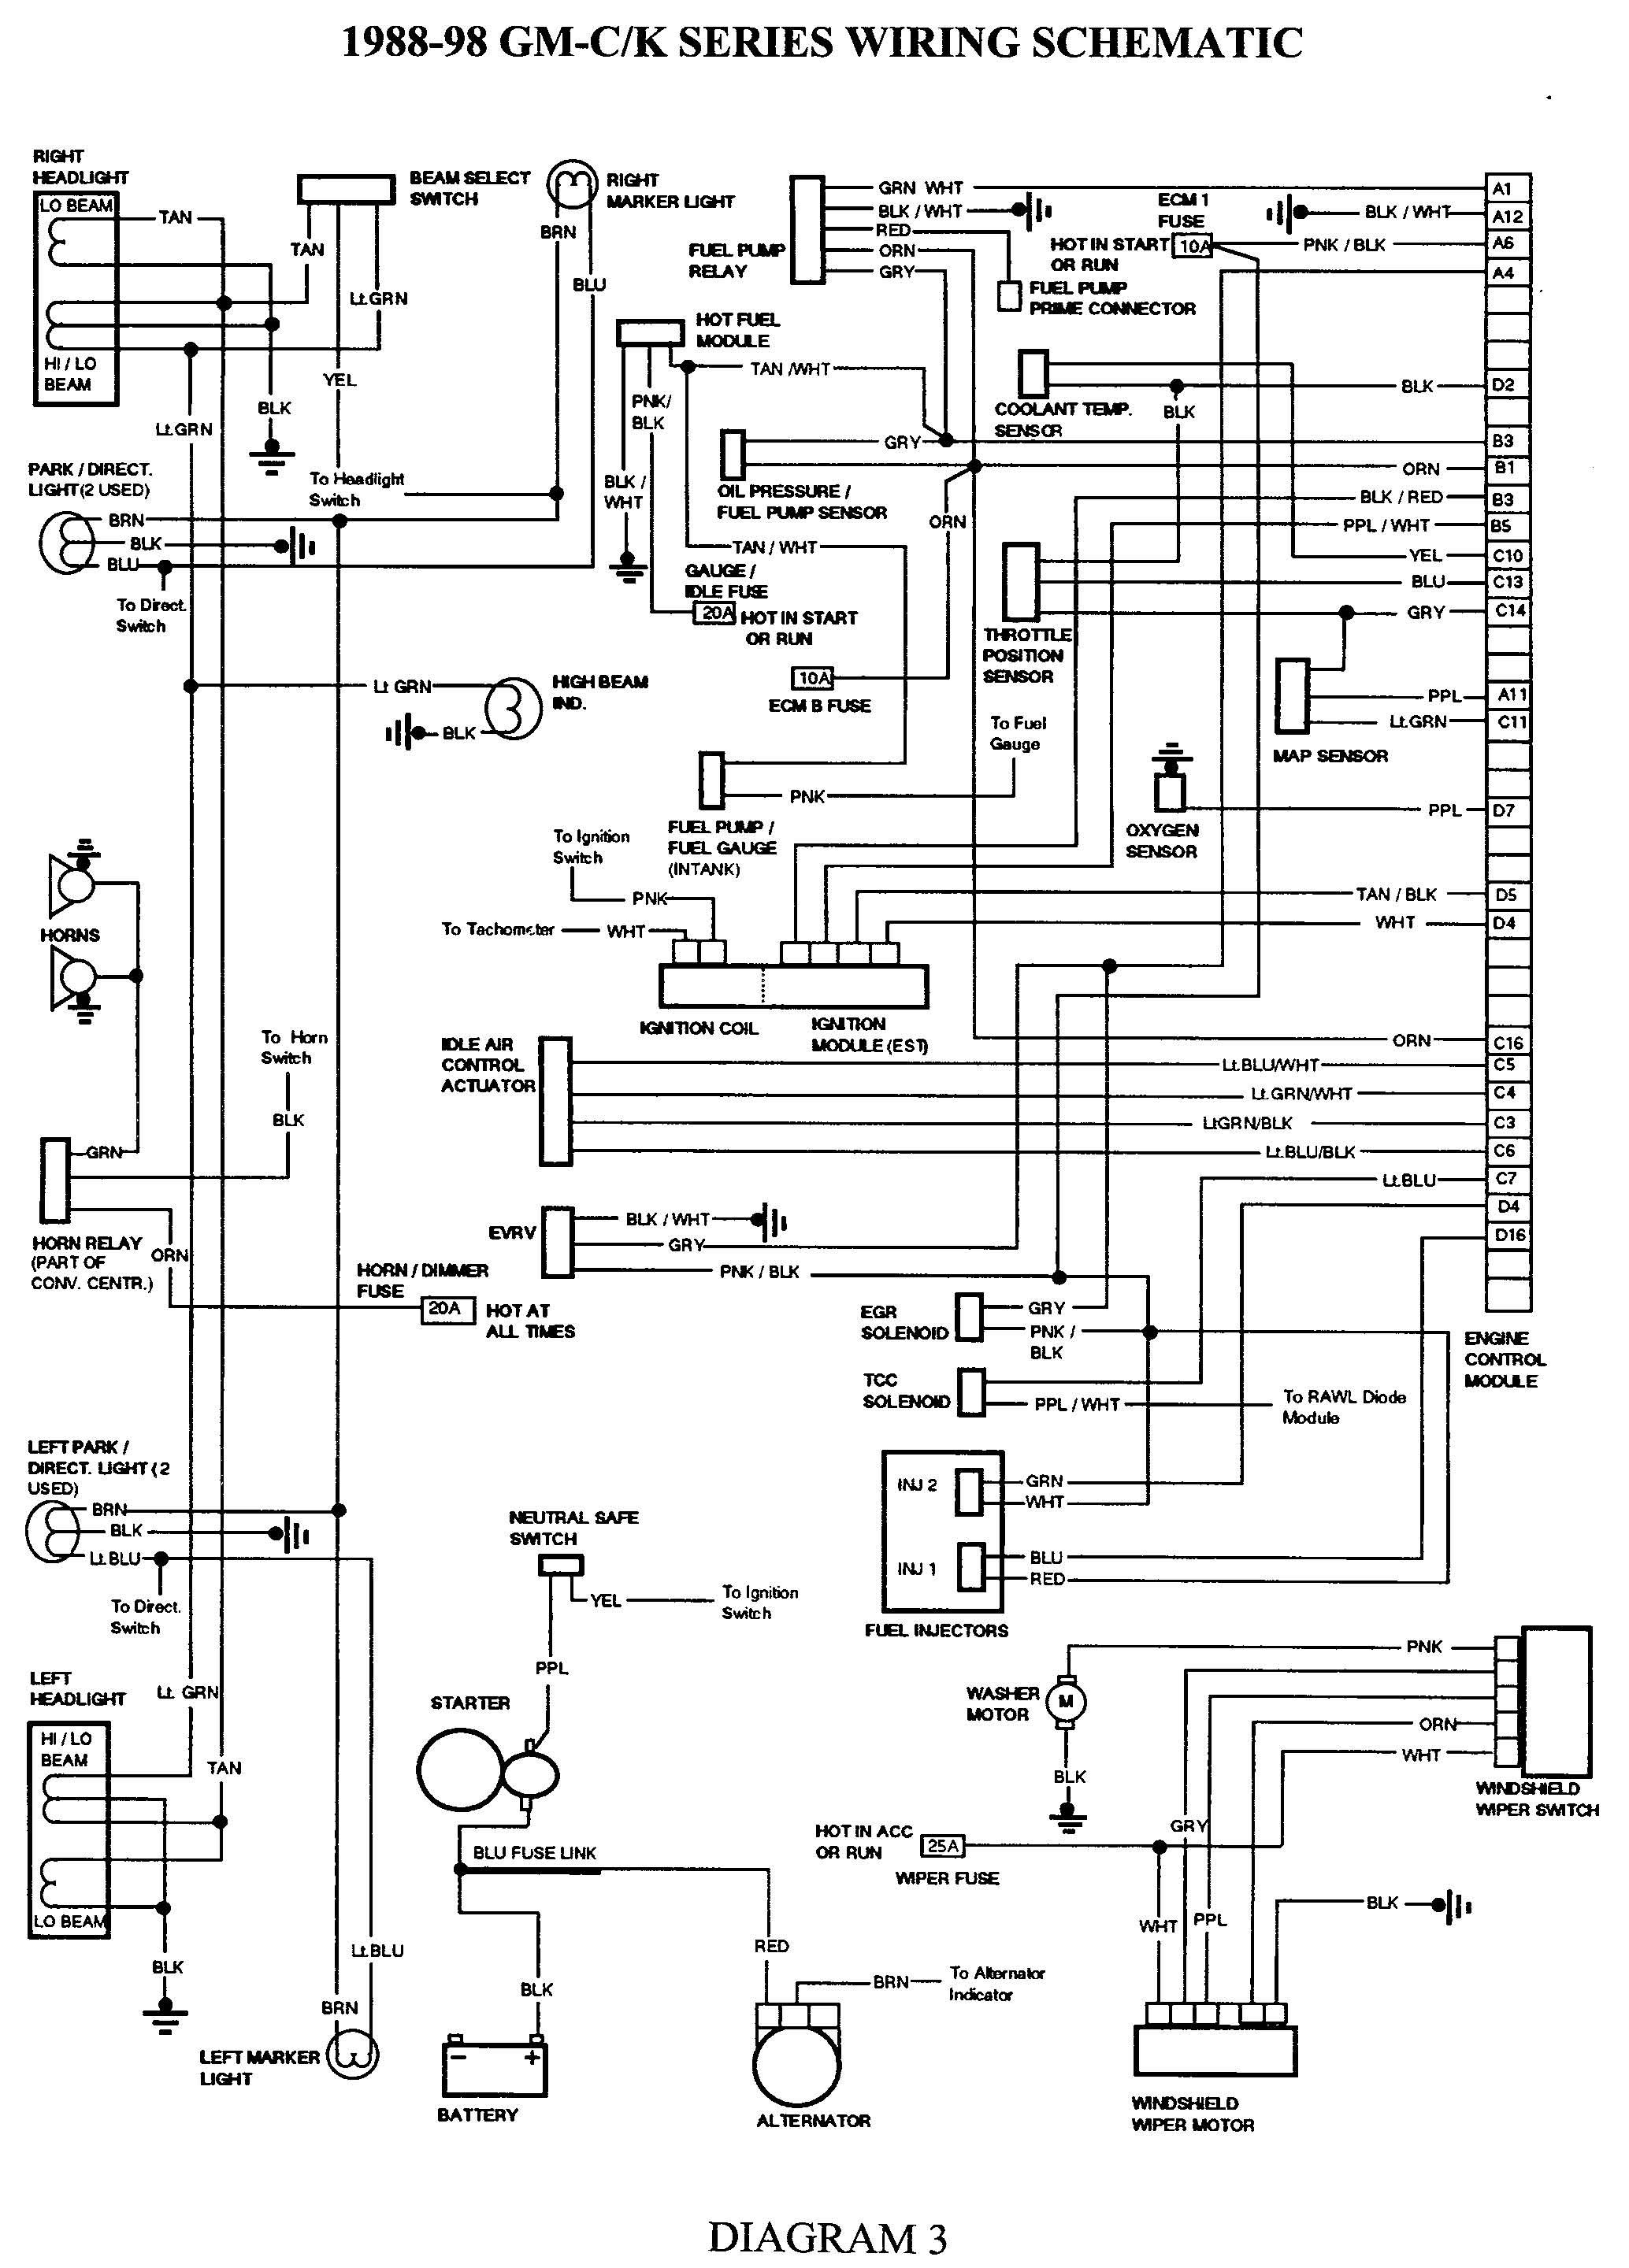 gmc truck wiring diagrams on gm wiring harness diagram 88 98 kc rh pinterest com gmc wiring diagram for trailer 1994 gmc wiring diagram